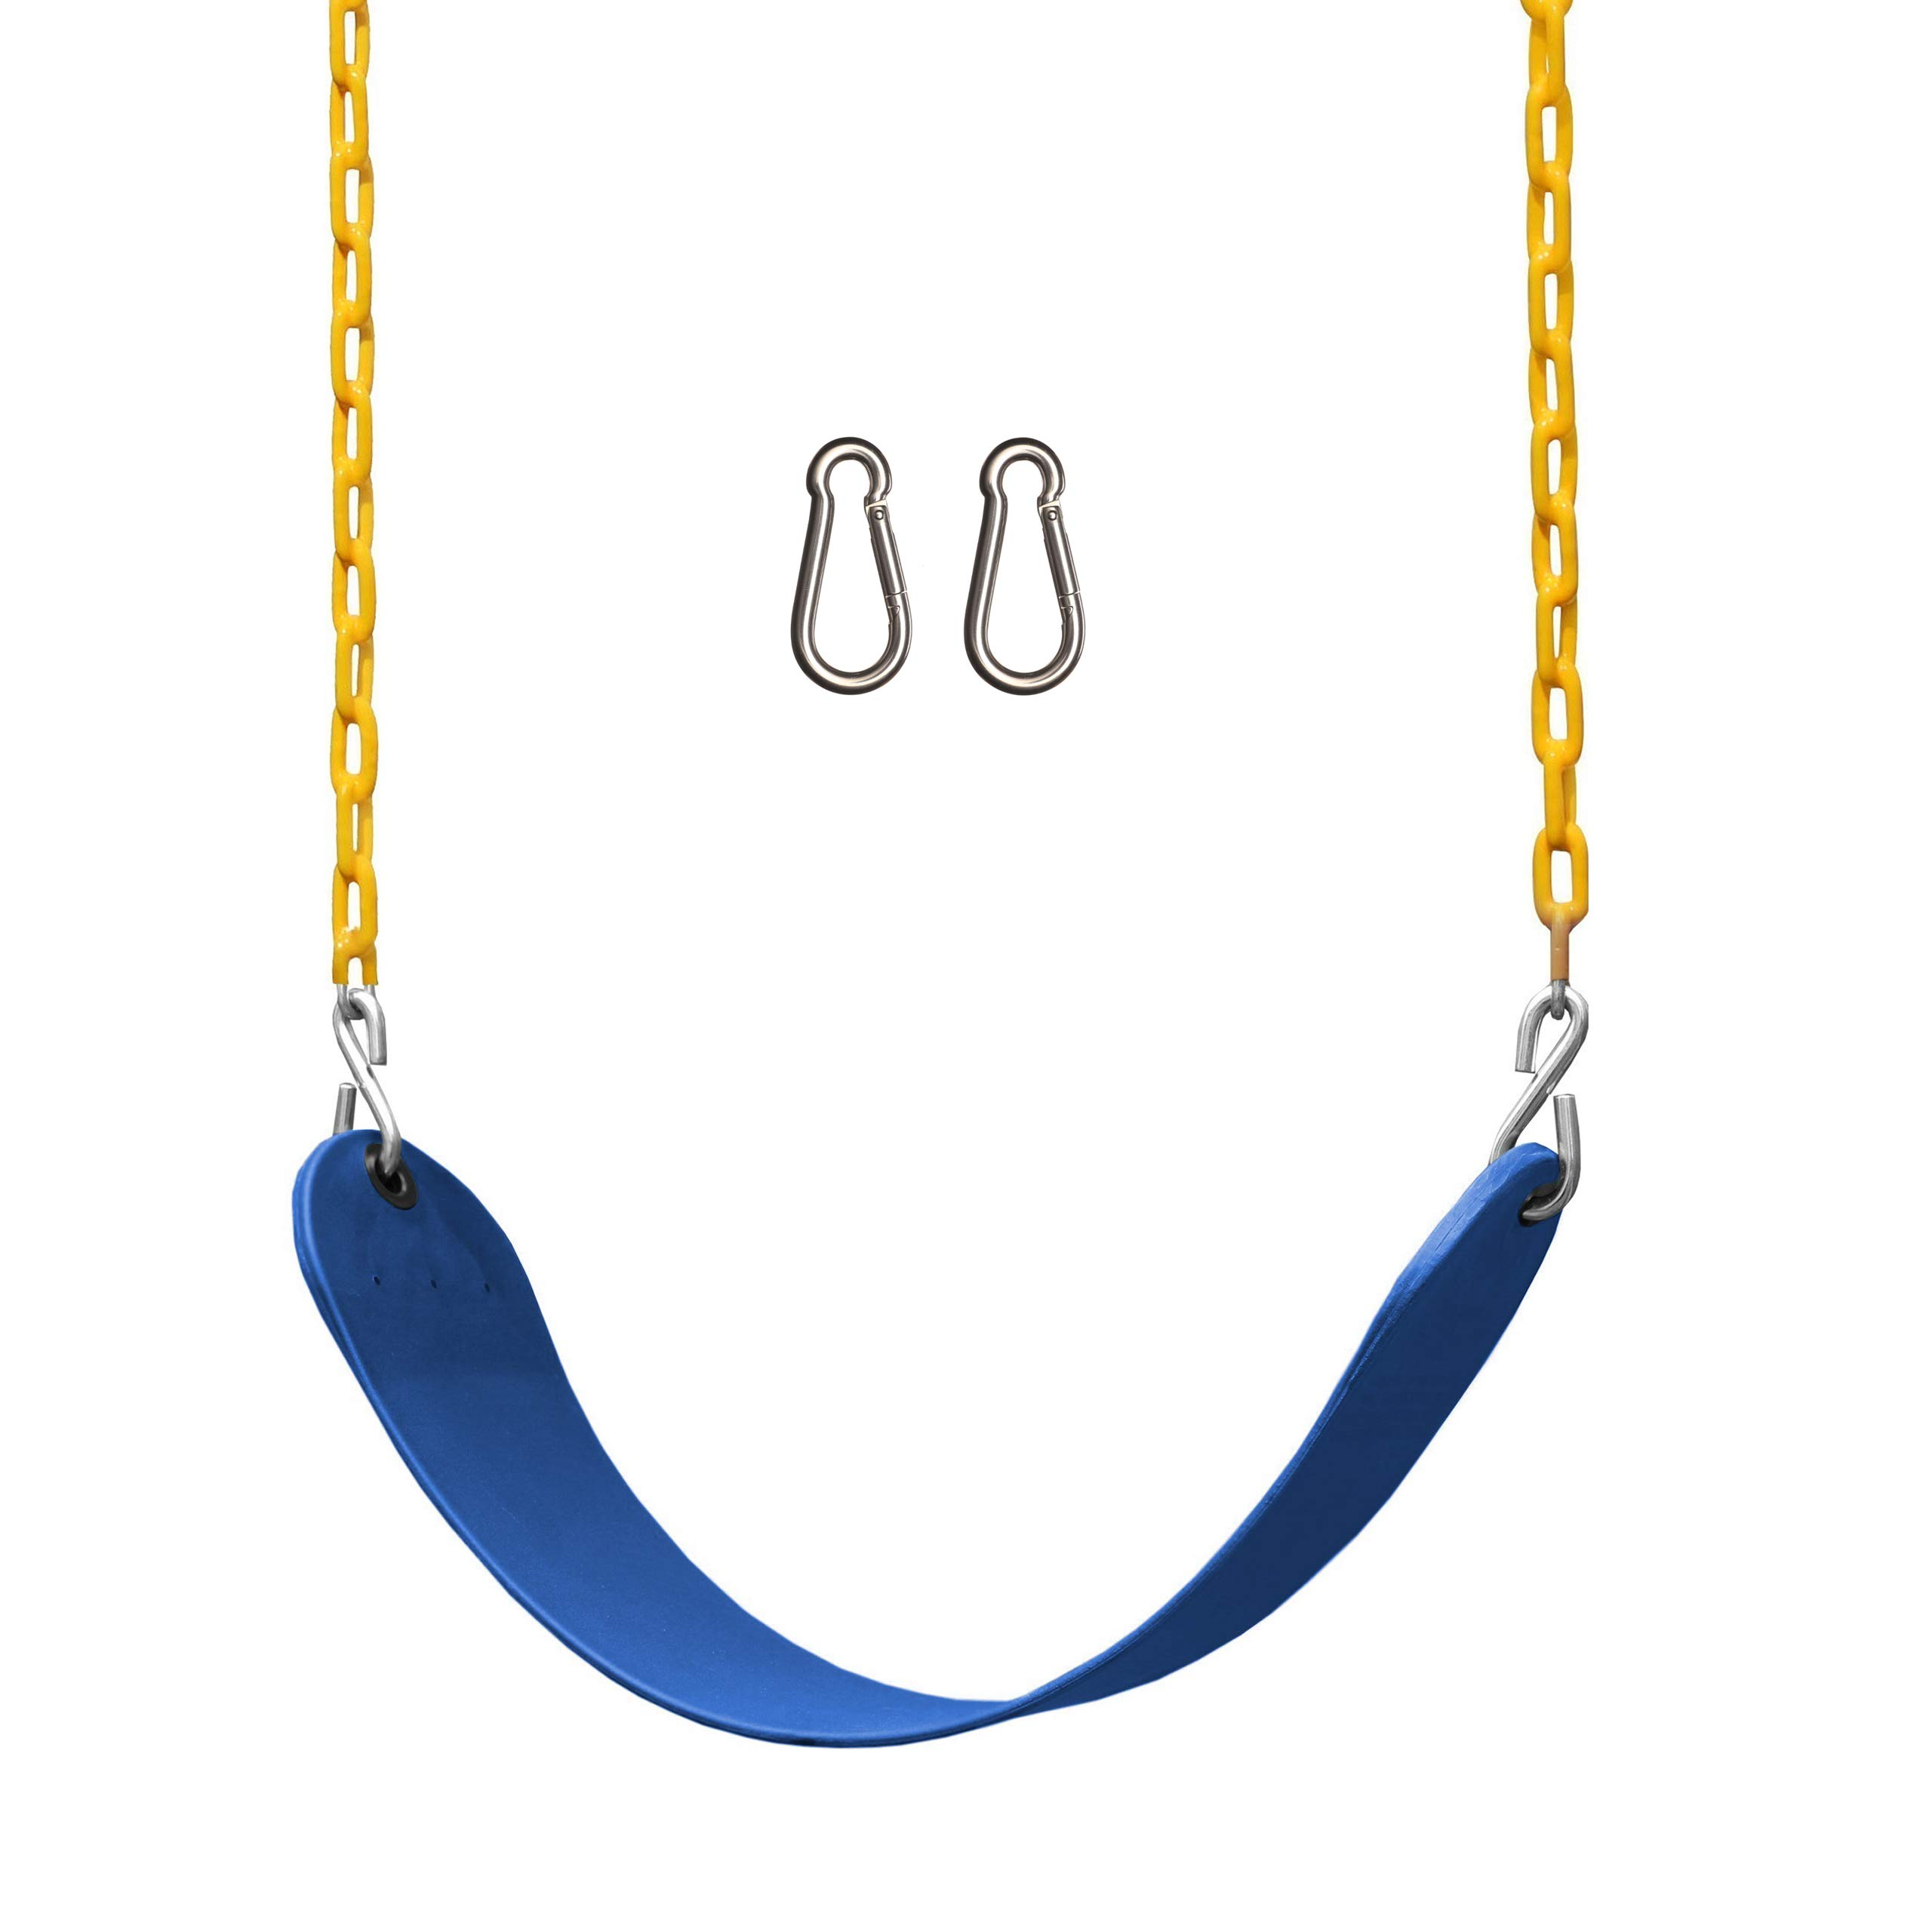 Jungle Gym Kingdom Swings for Swing Set - Heavy Duty Parts, Chain & Seat - Replacement Playground Accessories Kit for Kids Backyard Outdoor Swingset (Blue)